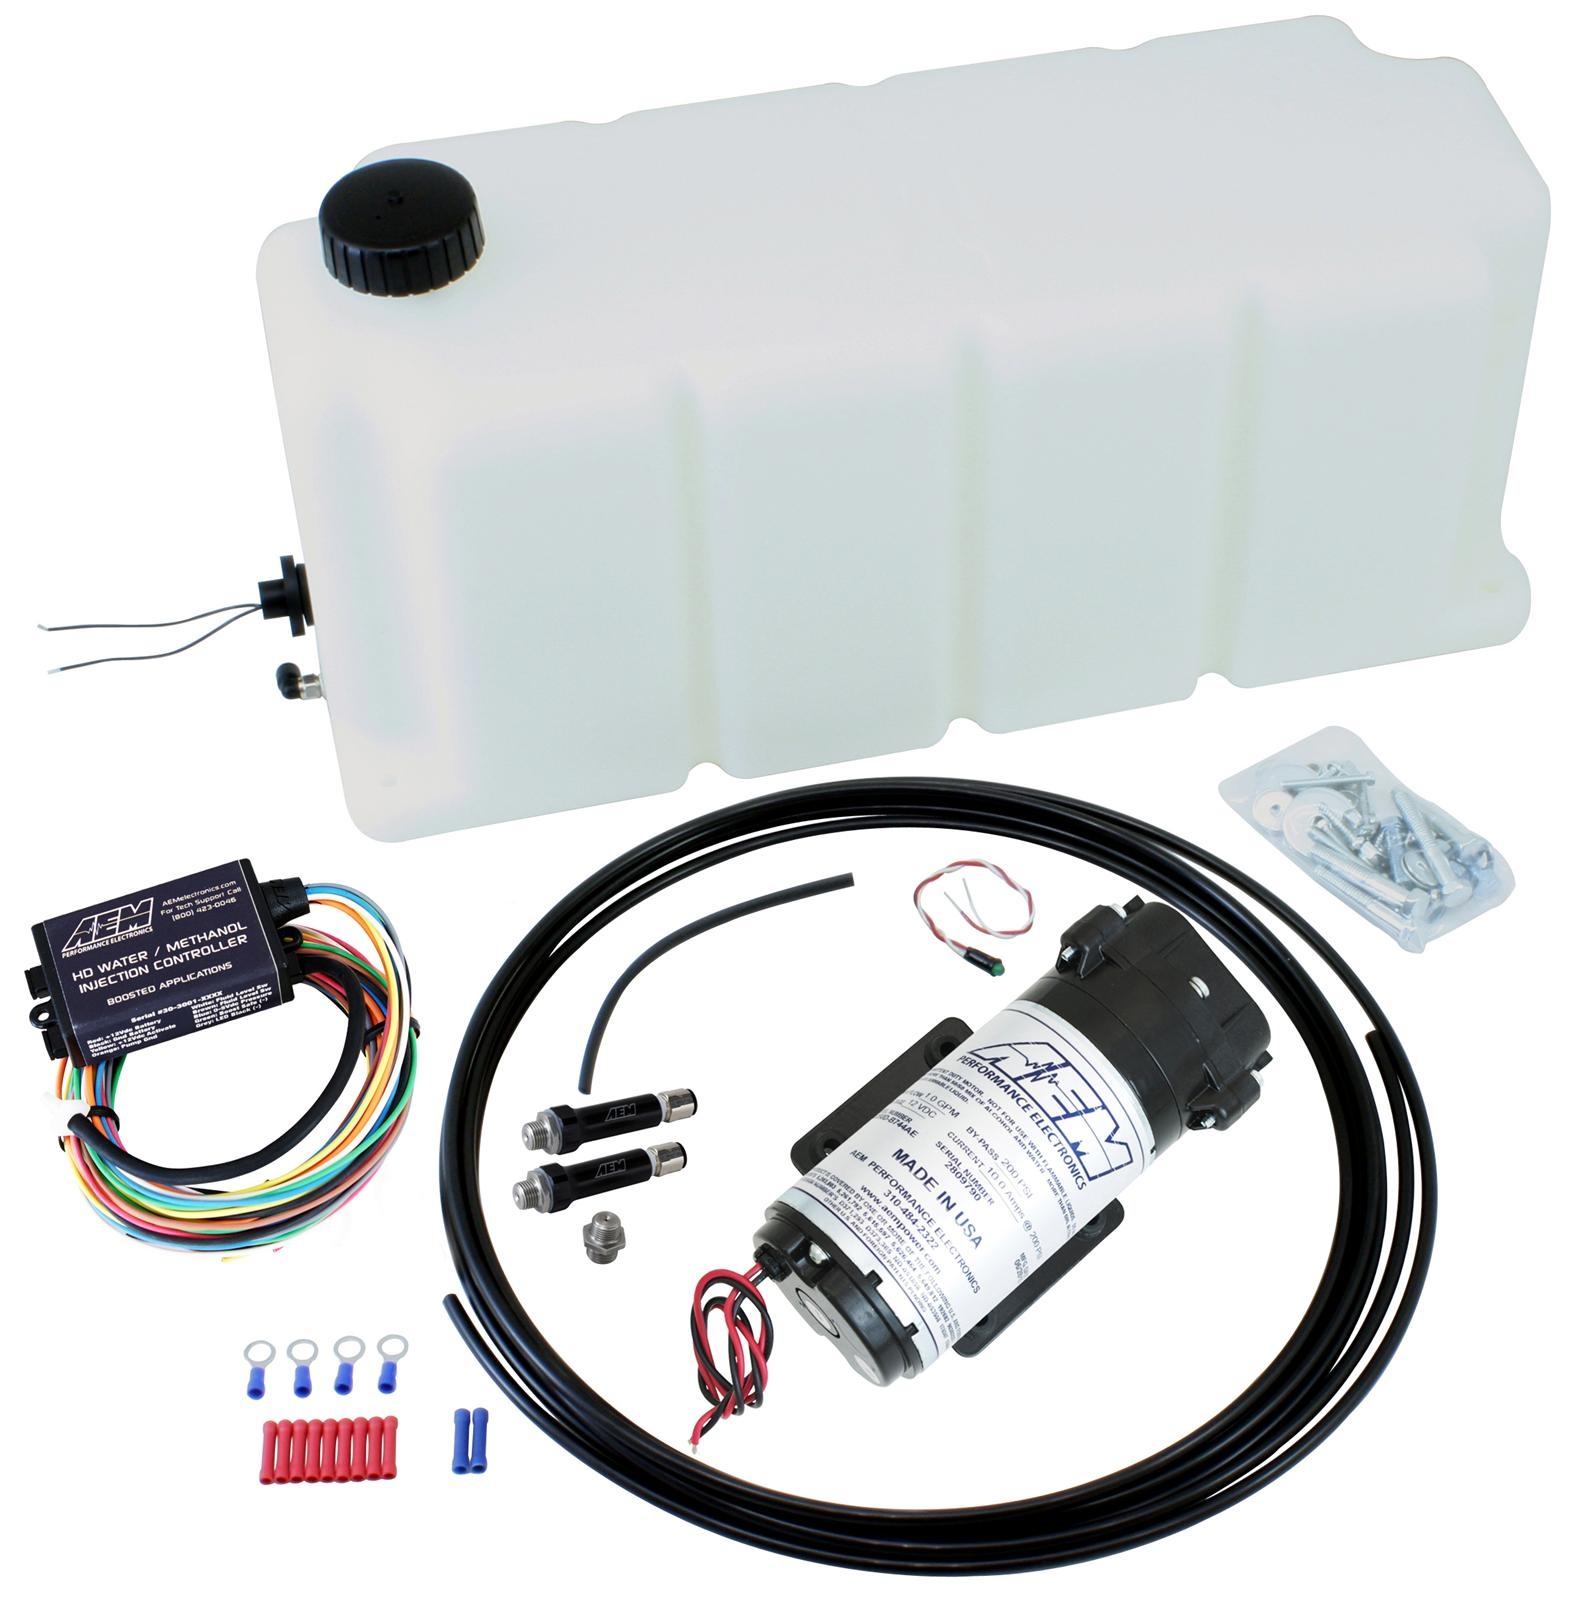 Aem Electronics Water Methanol Injection Kits 30 3001 Free Wiring Harness Shipping On Orders Over 49 At Summit Racing